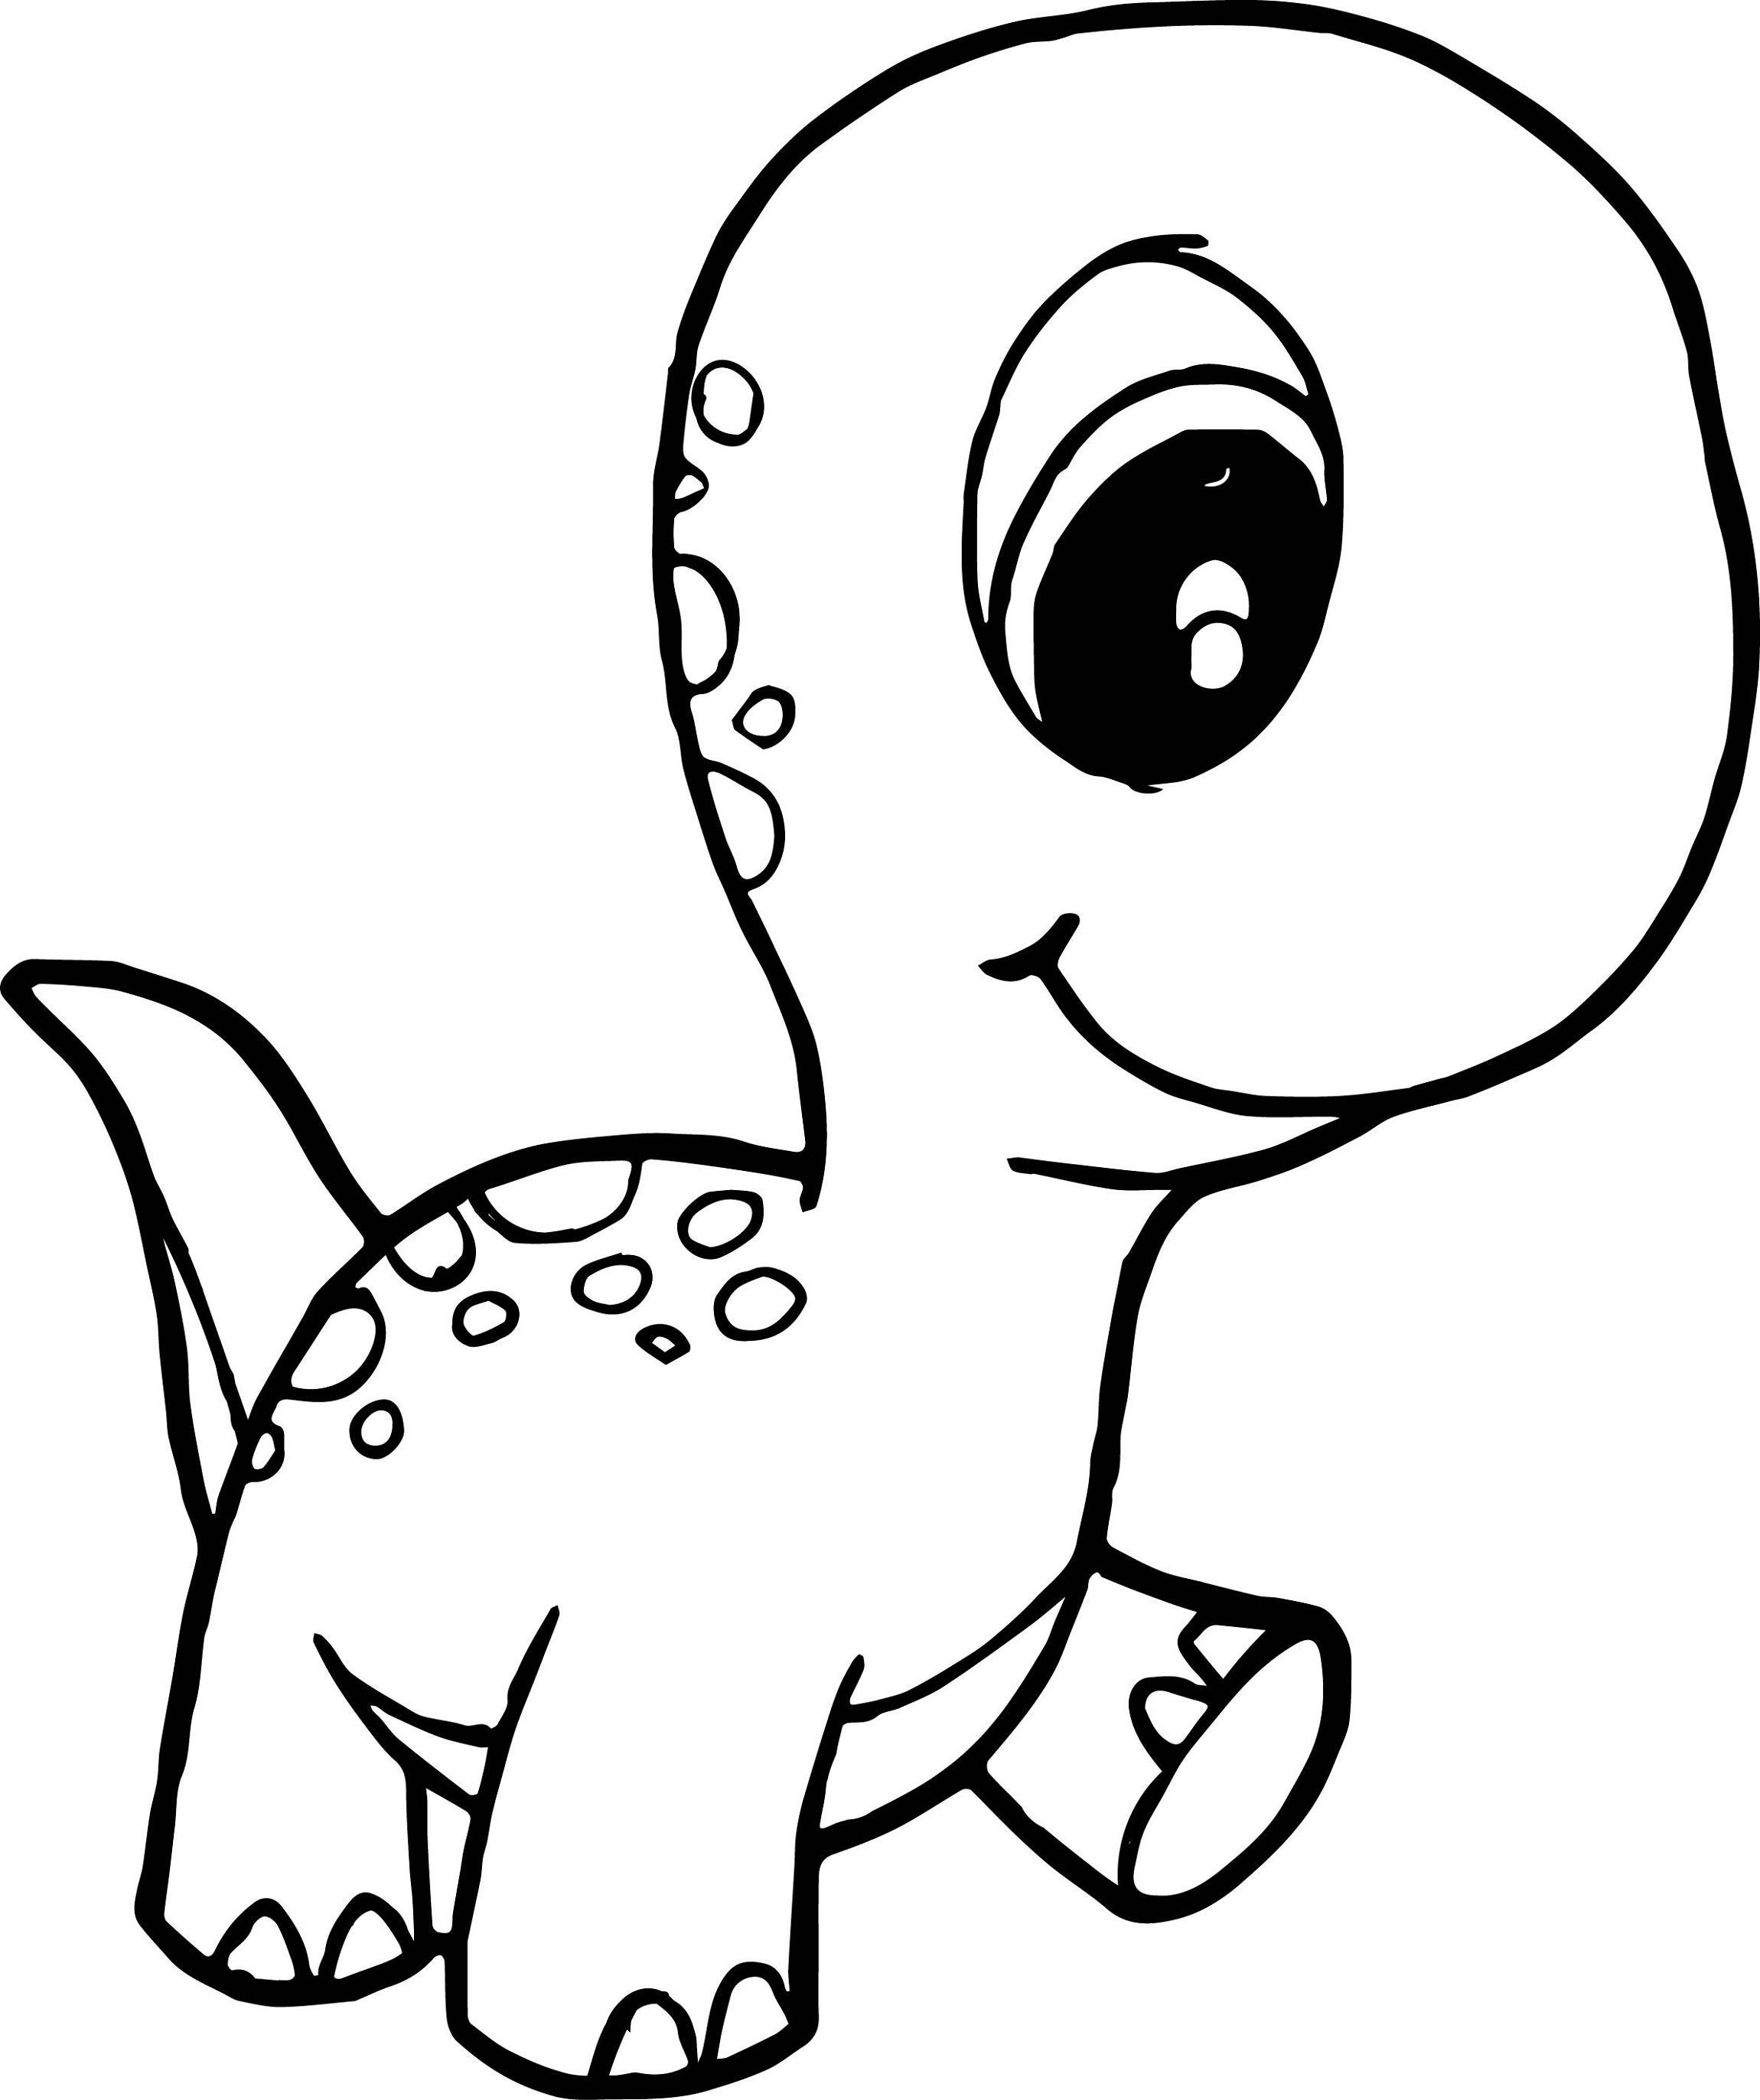 Baby Dinosaur Coloring Pages For Preschoolers Cute Coloring Pages Dinosaur Coloring Dragon Coloring Page